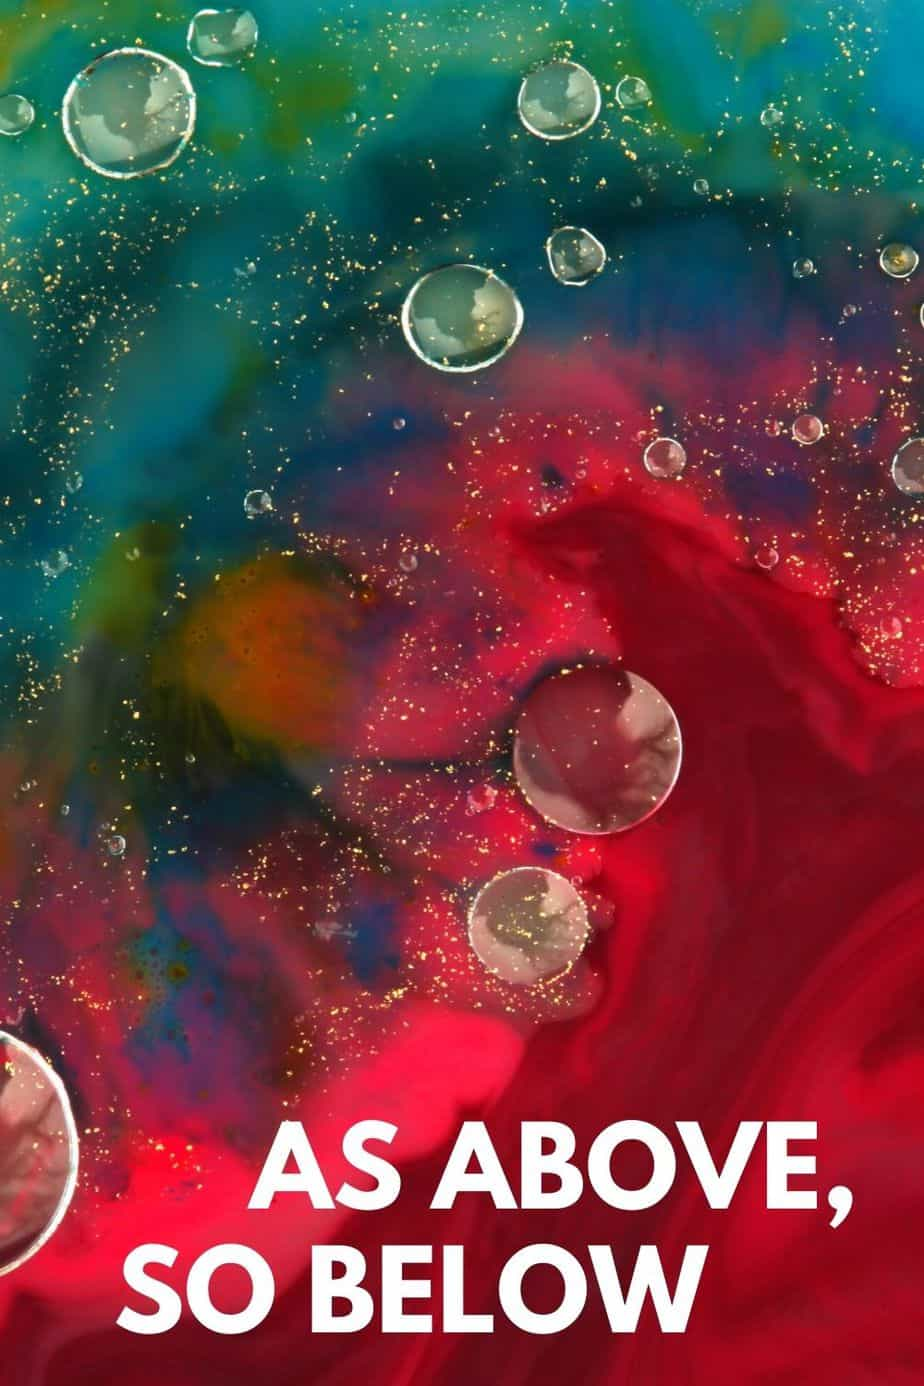 As Above So Below Meaning